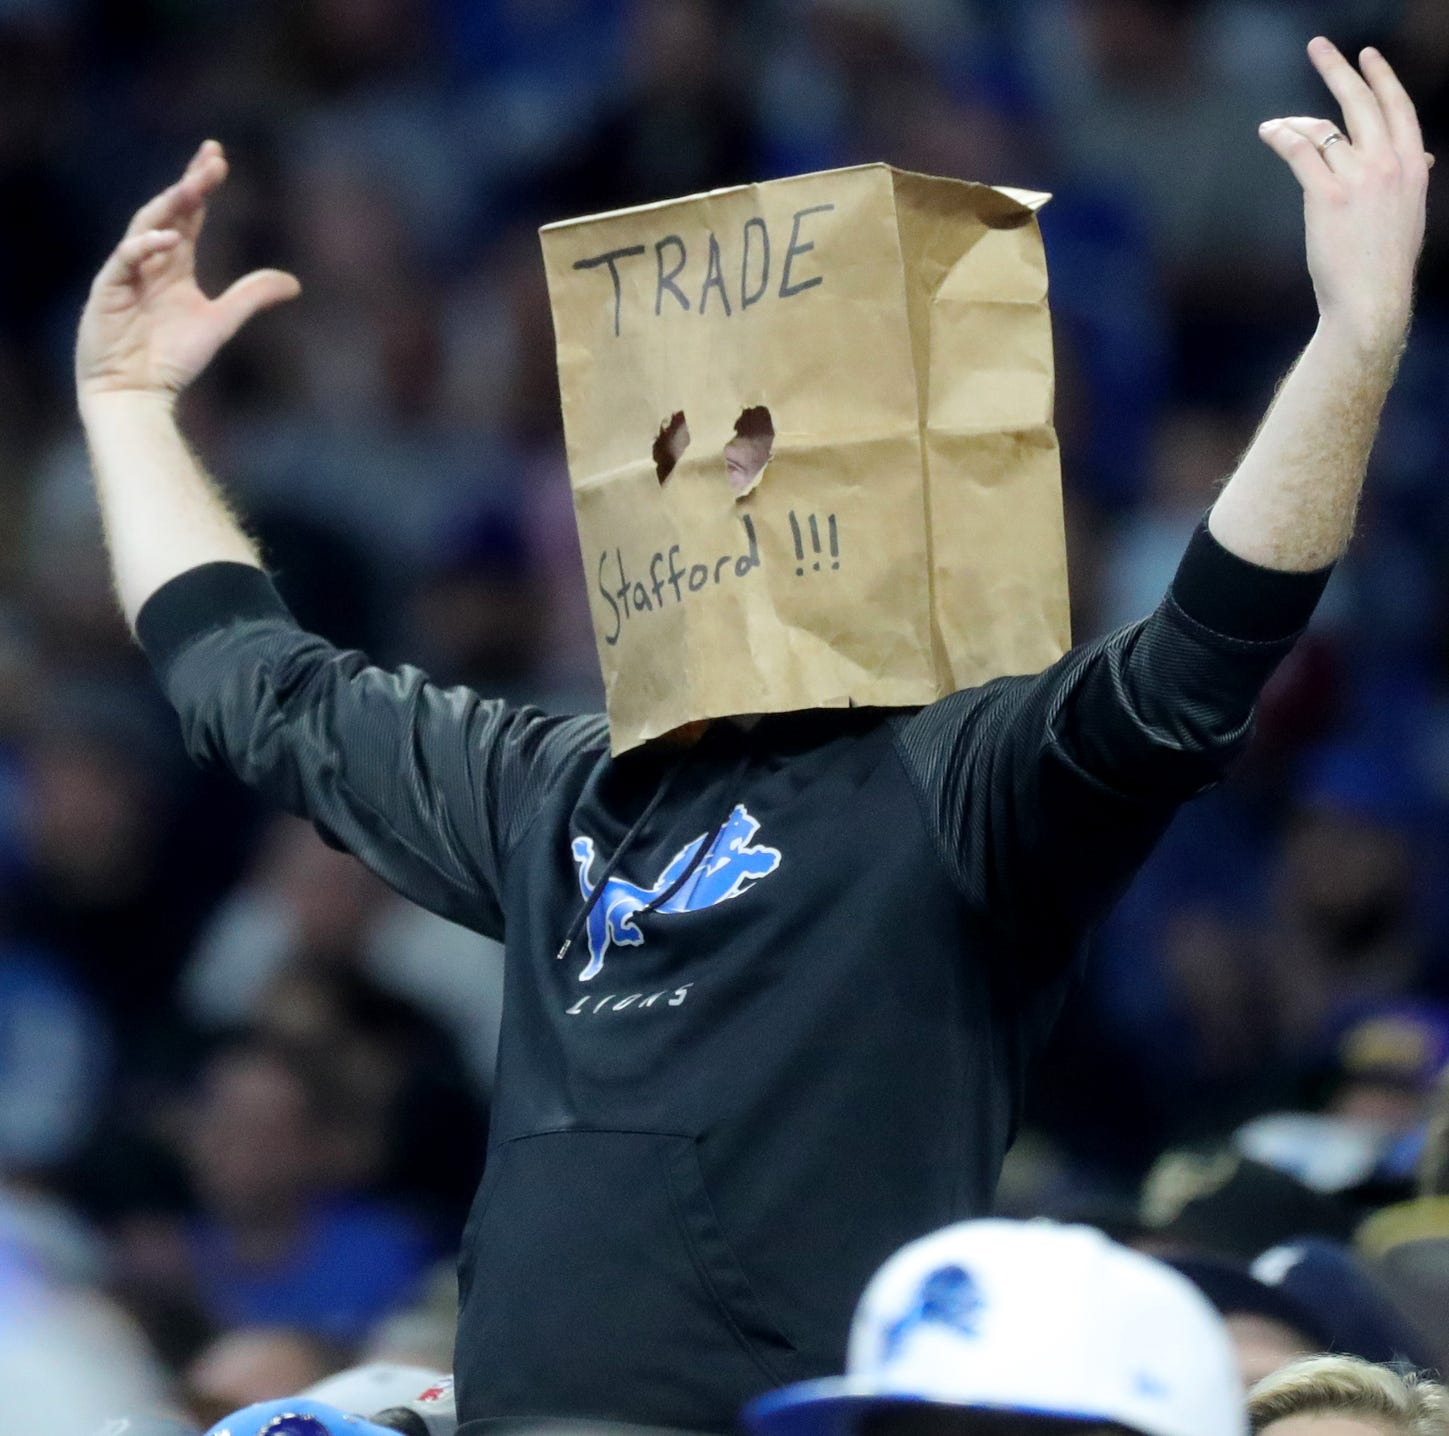 This Detroit Lions-loving reverend can't stand the idea of tanking